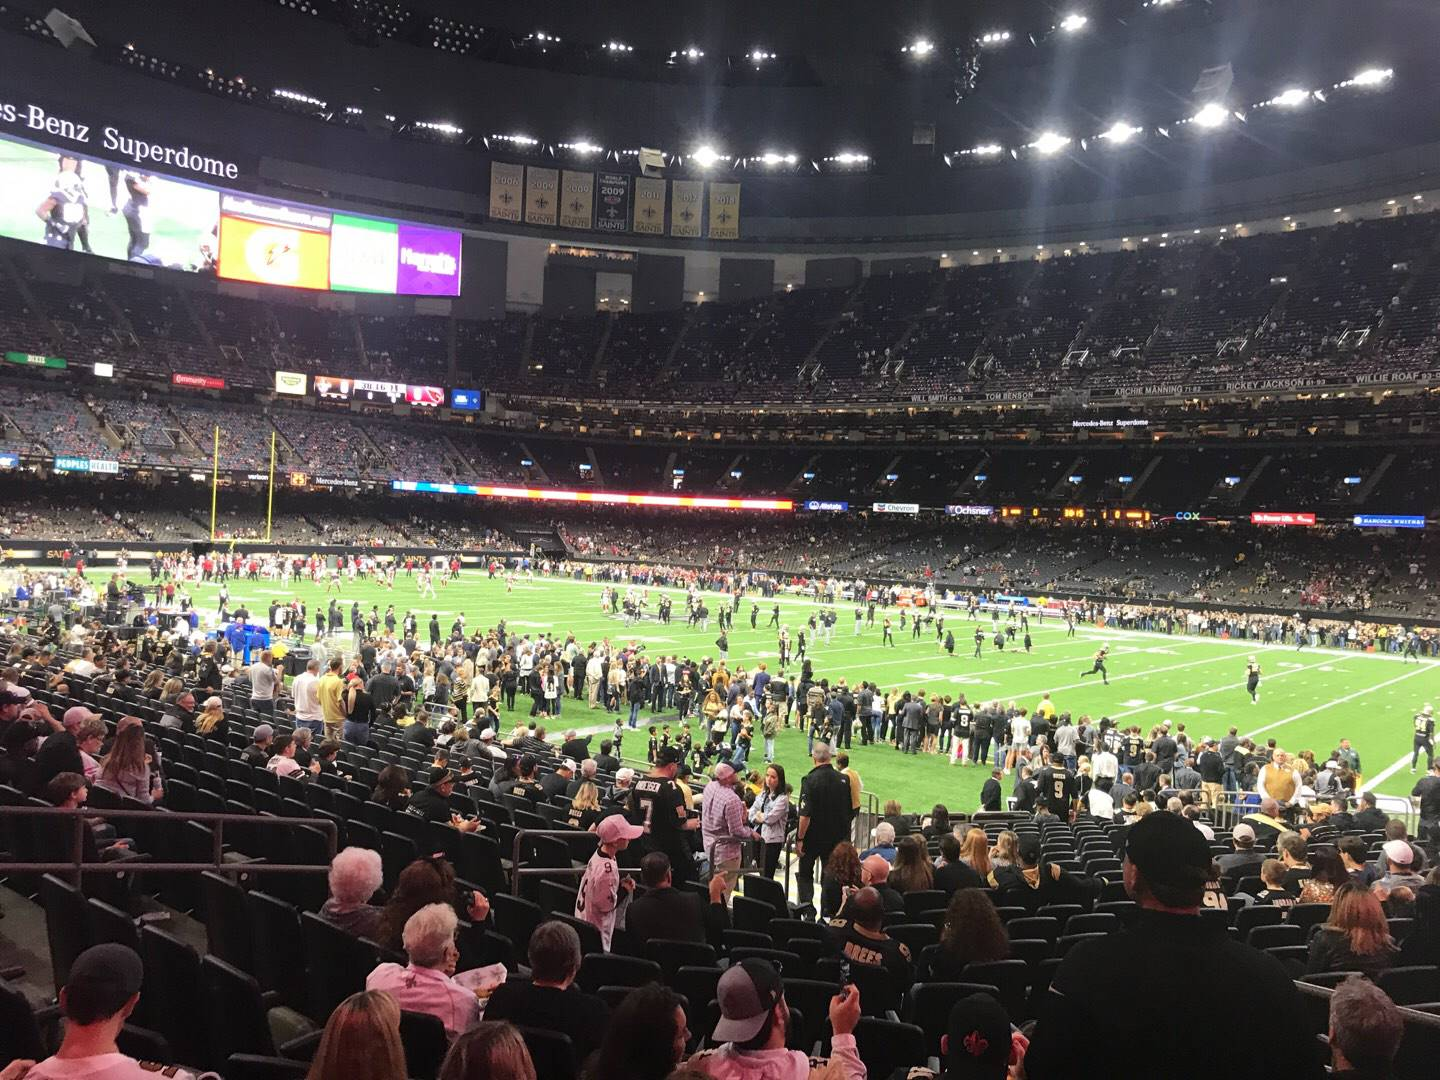 Mercedes-Benz Superdome Section 137 Row 22 Seat 7